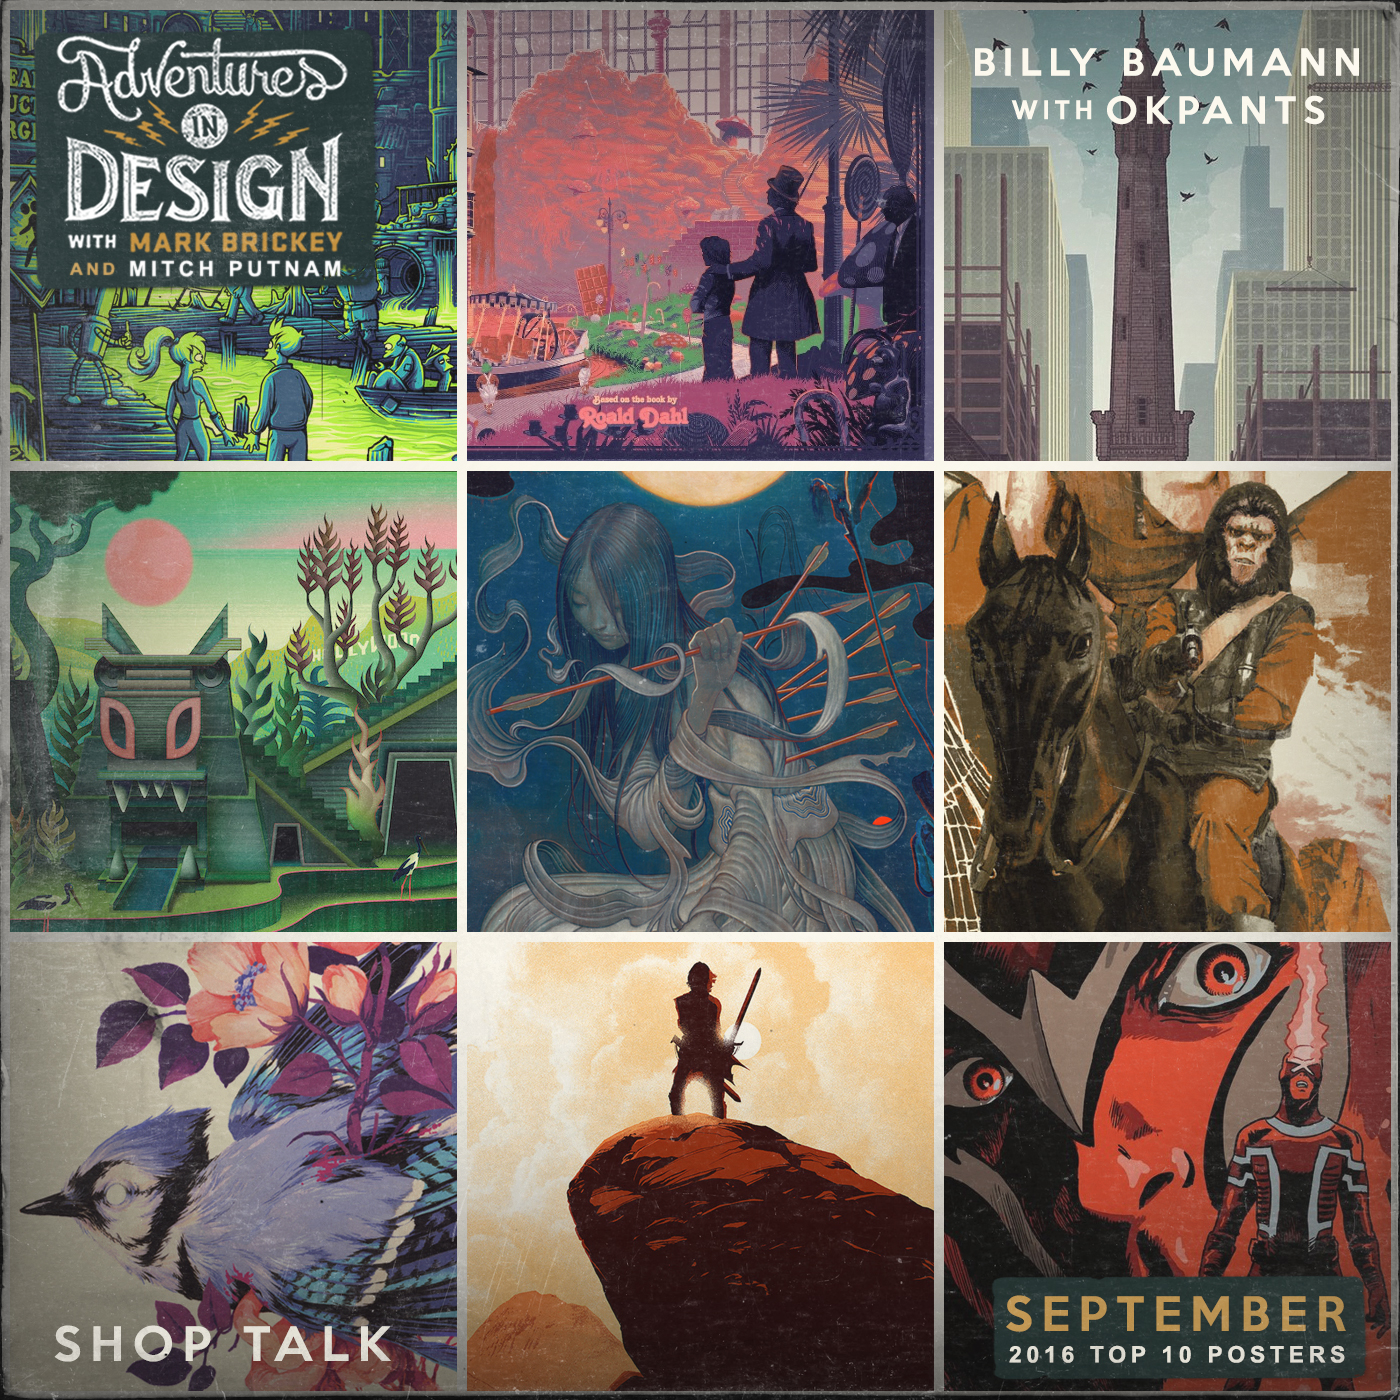 471 - Shop Talk / Poster Countdown with Billy Baumann, Mitch Putnam, and OK Pants